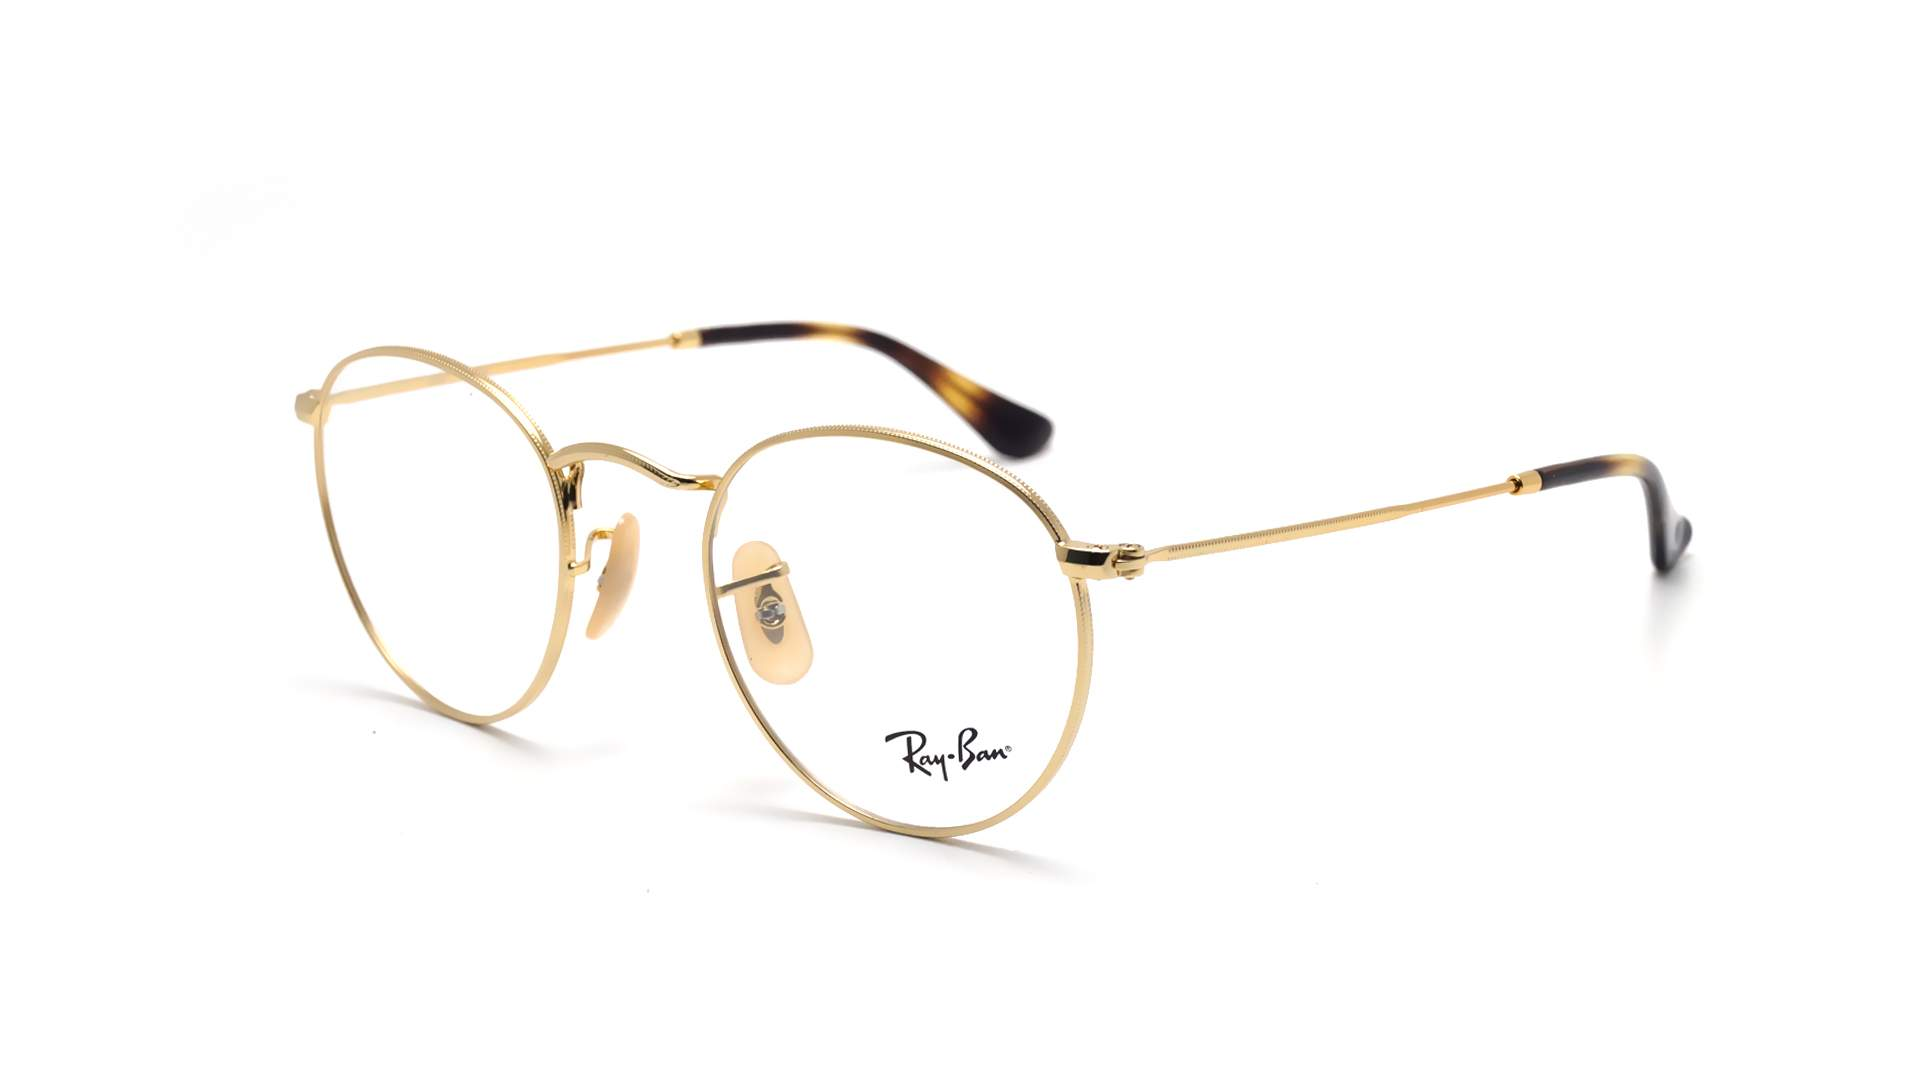 lunette ray-ban-round-metal-optics-or-rx3447-rb3447v-2500-47-21-small